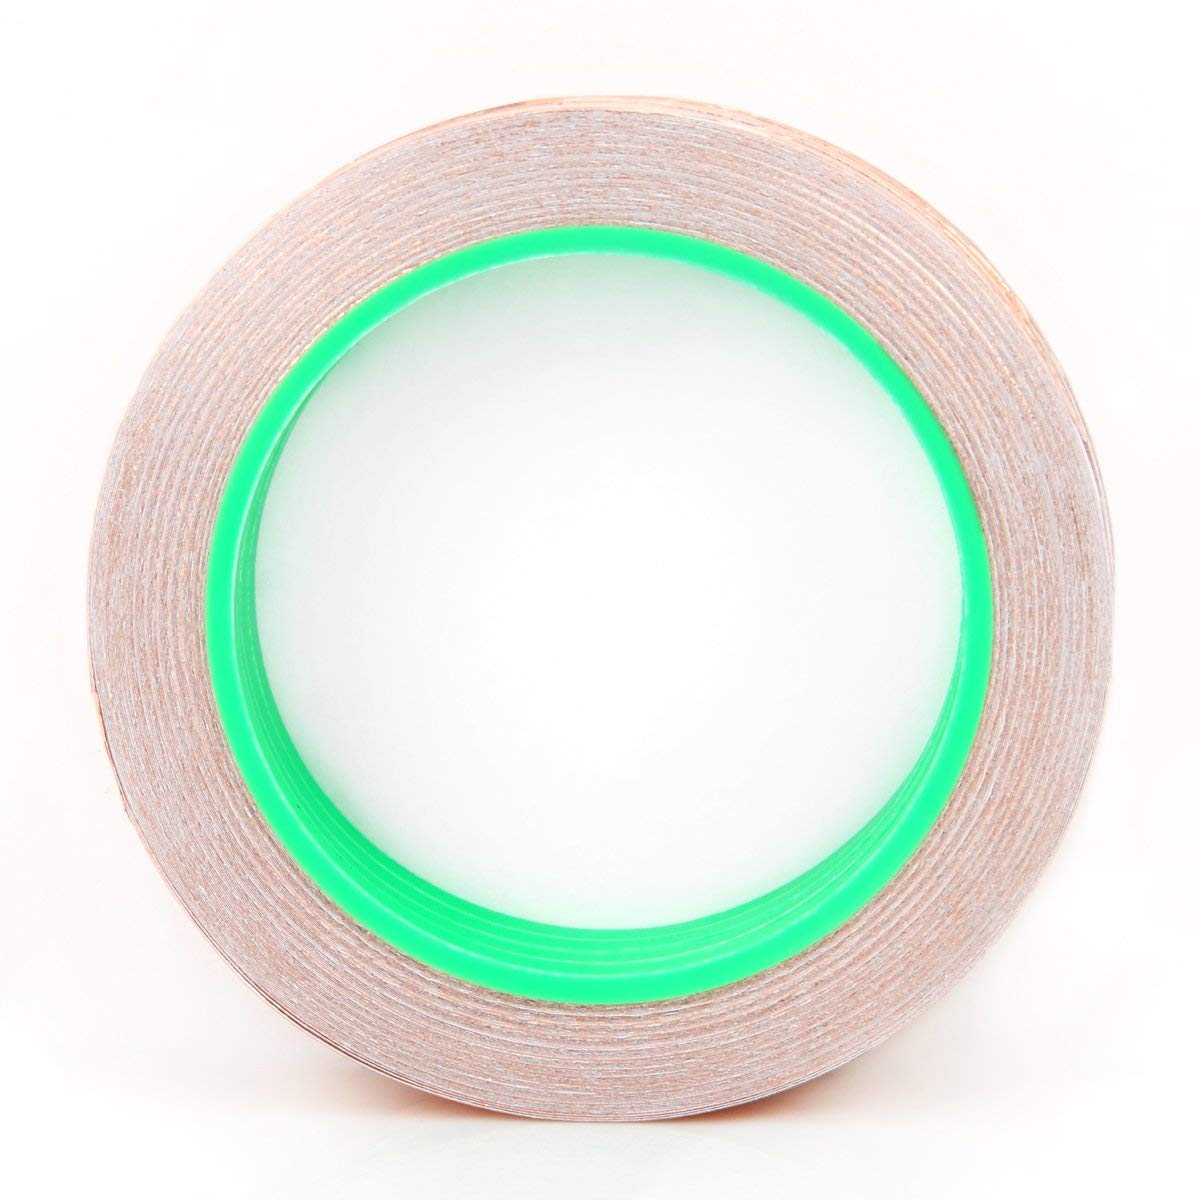 AMX3d Lilypad Low Voltage Circuit Wiring Solutions Stainless Steel Twine for Lilypad Arduino and Wearable E-Textile Projects Connect Battery Holders /& LEDs 5 Meters 6437158 2 Ply Conductive Thread